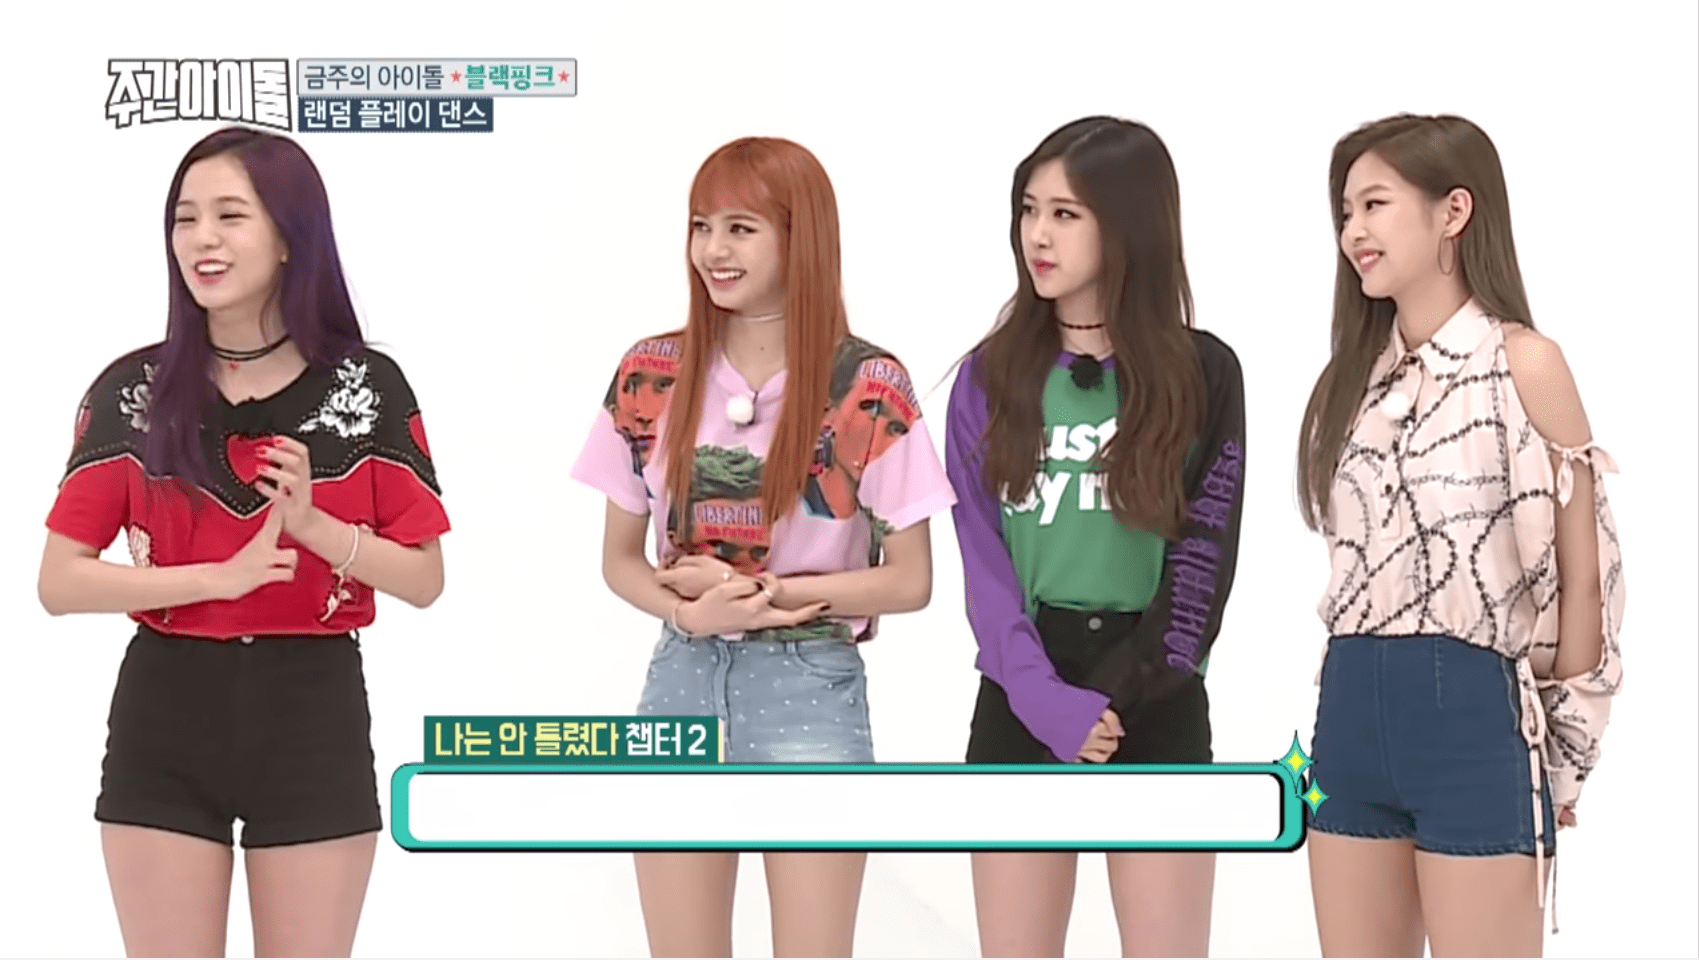 Watch Blackpink Throw Each Other Under The Bus During Random Play Dance On Weekly Idol Soompi Blackpink Weekly Idol Korean Girl Band